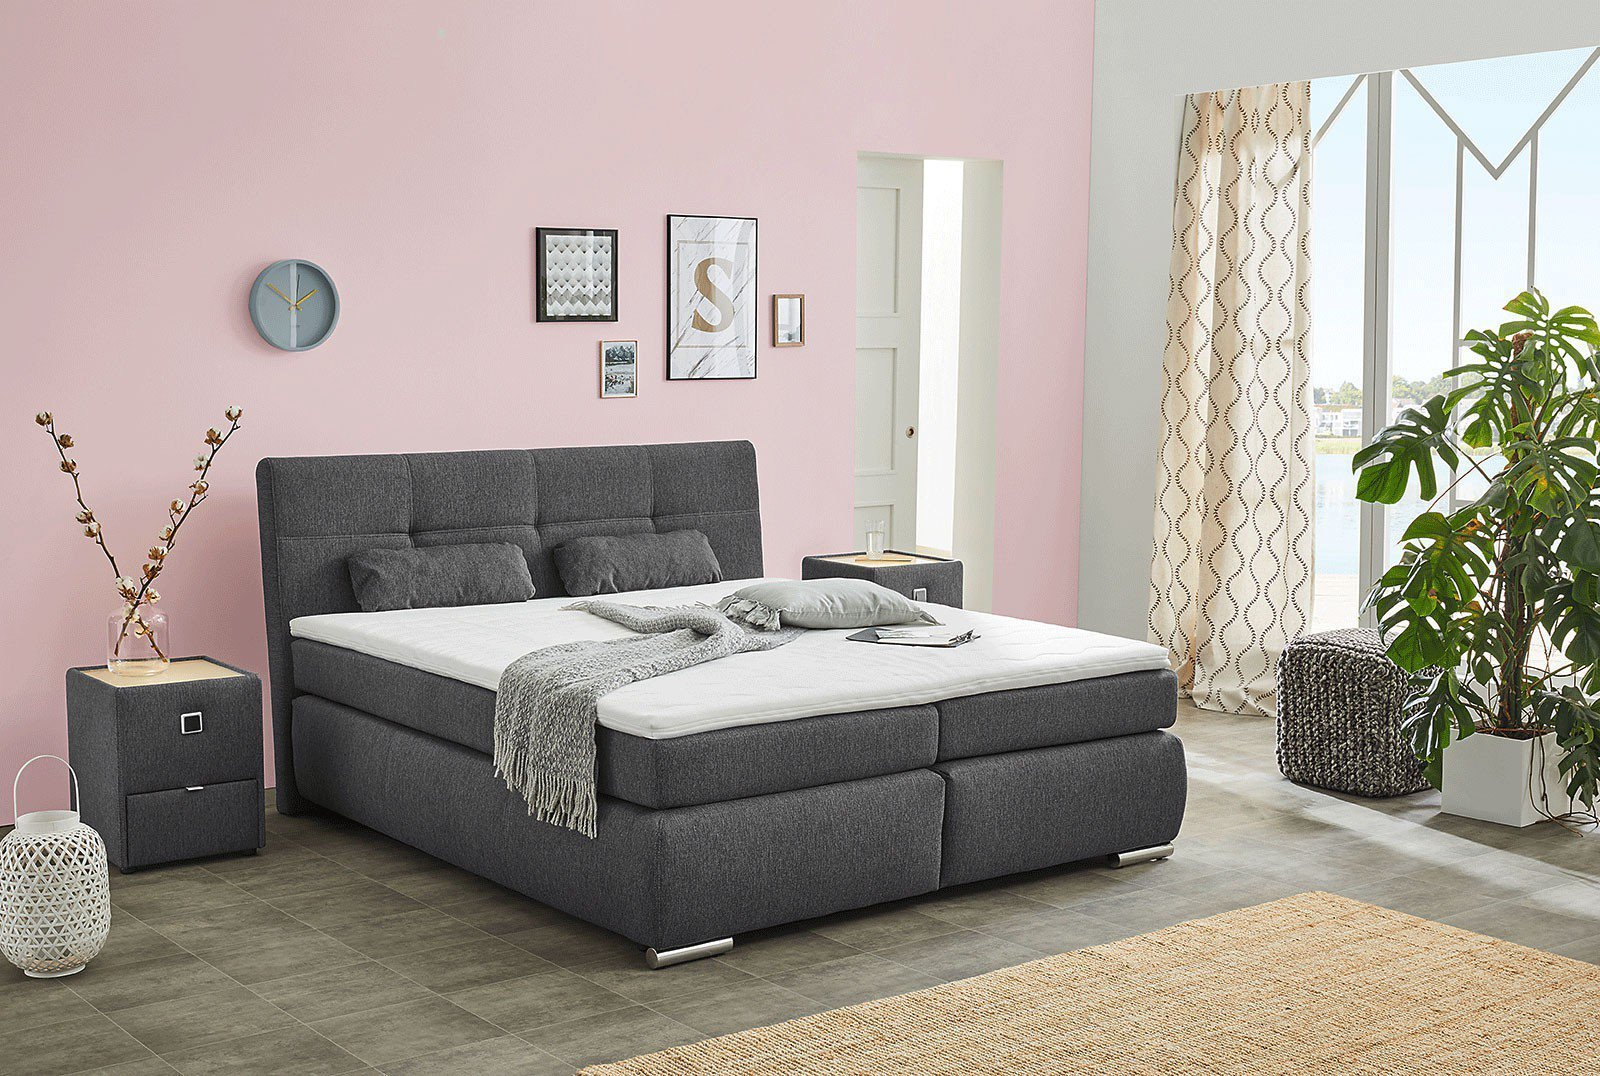 jockenh fer alexa boxspringbett mit bettkasten m bel letz ihr online shop. Black Bedroom Furniture Sets. Home Design Ideas